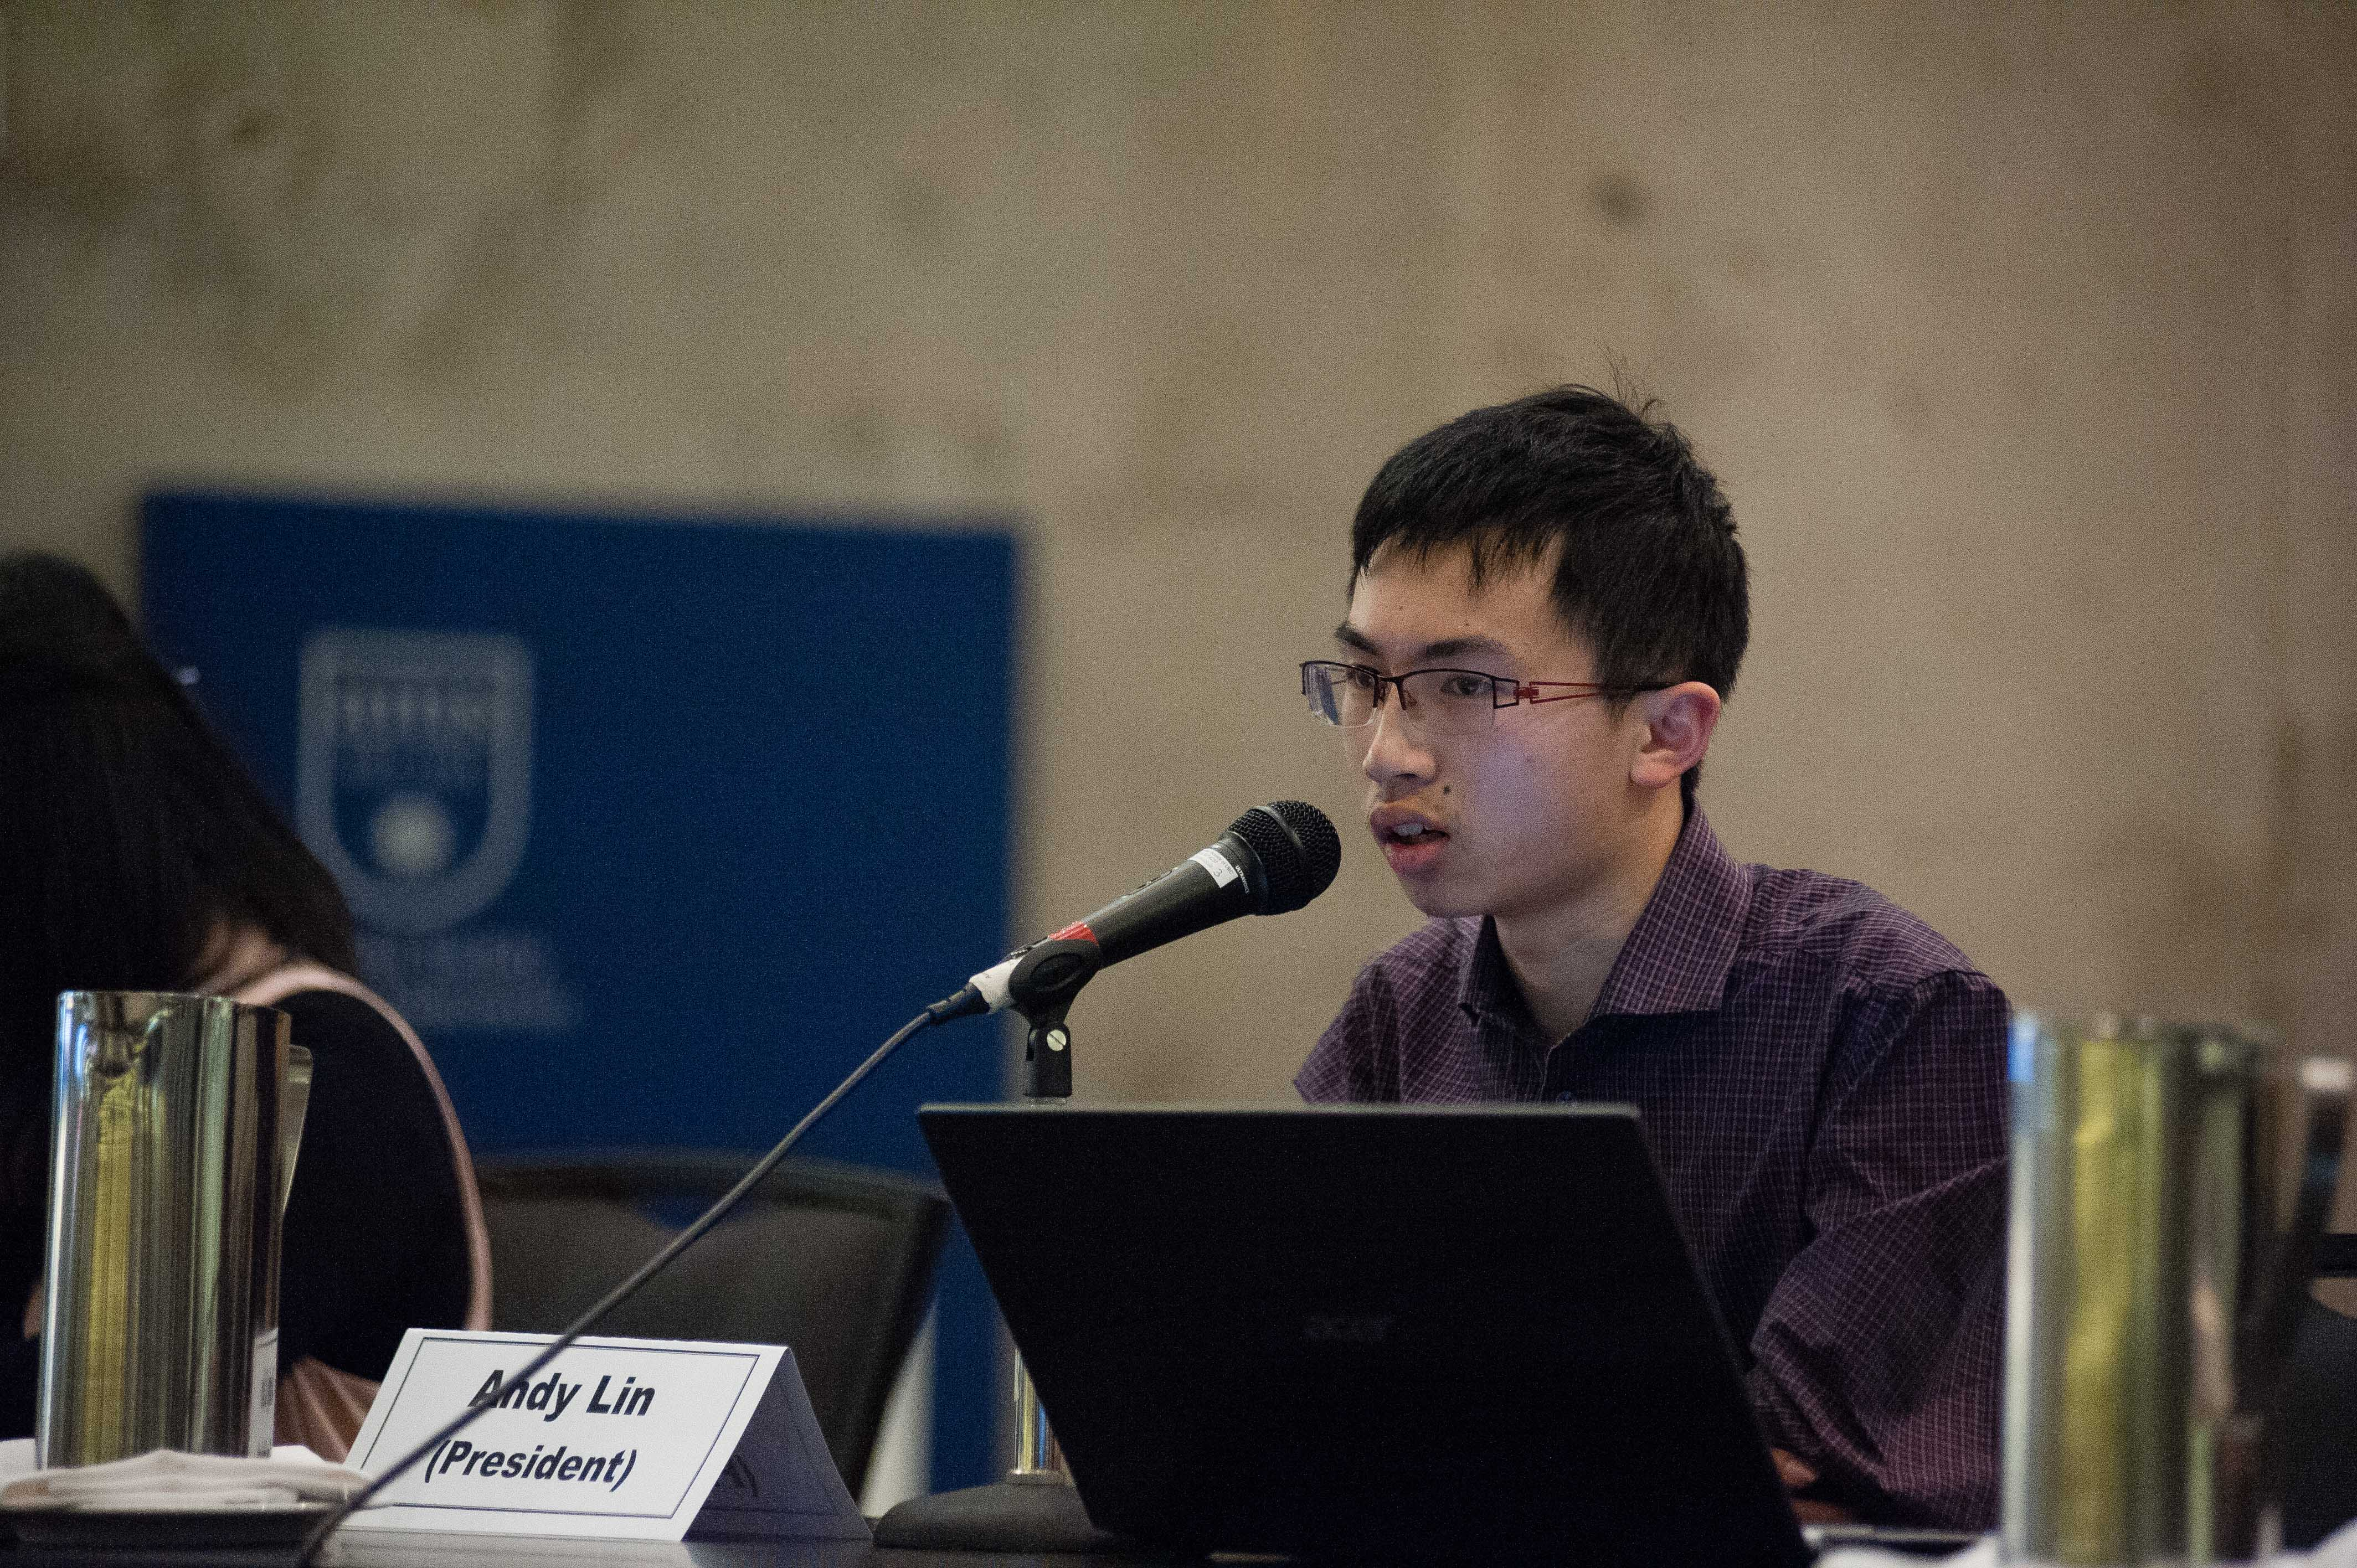 Candidate Andy Lin at the 2018 Great Debate.